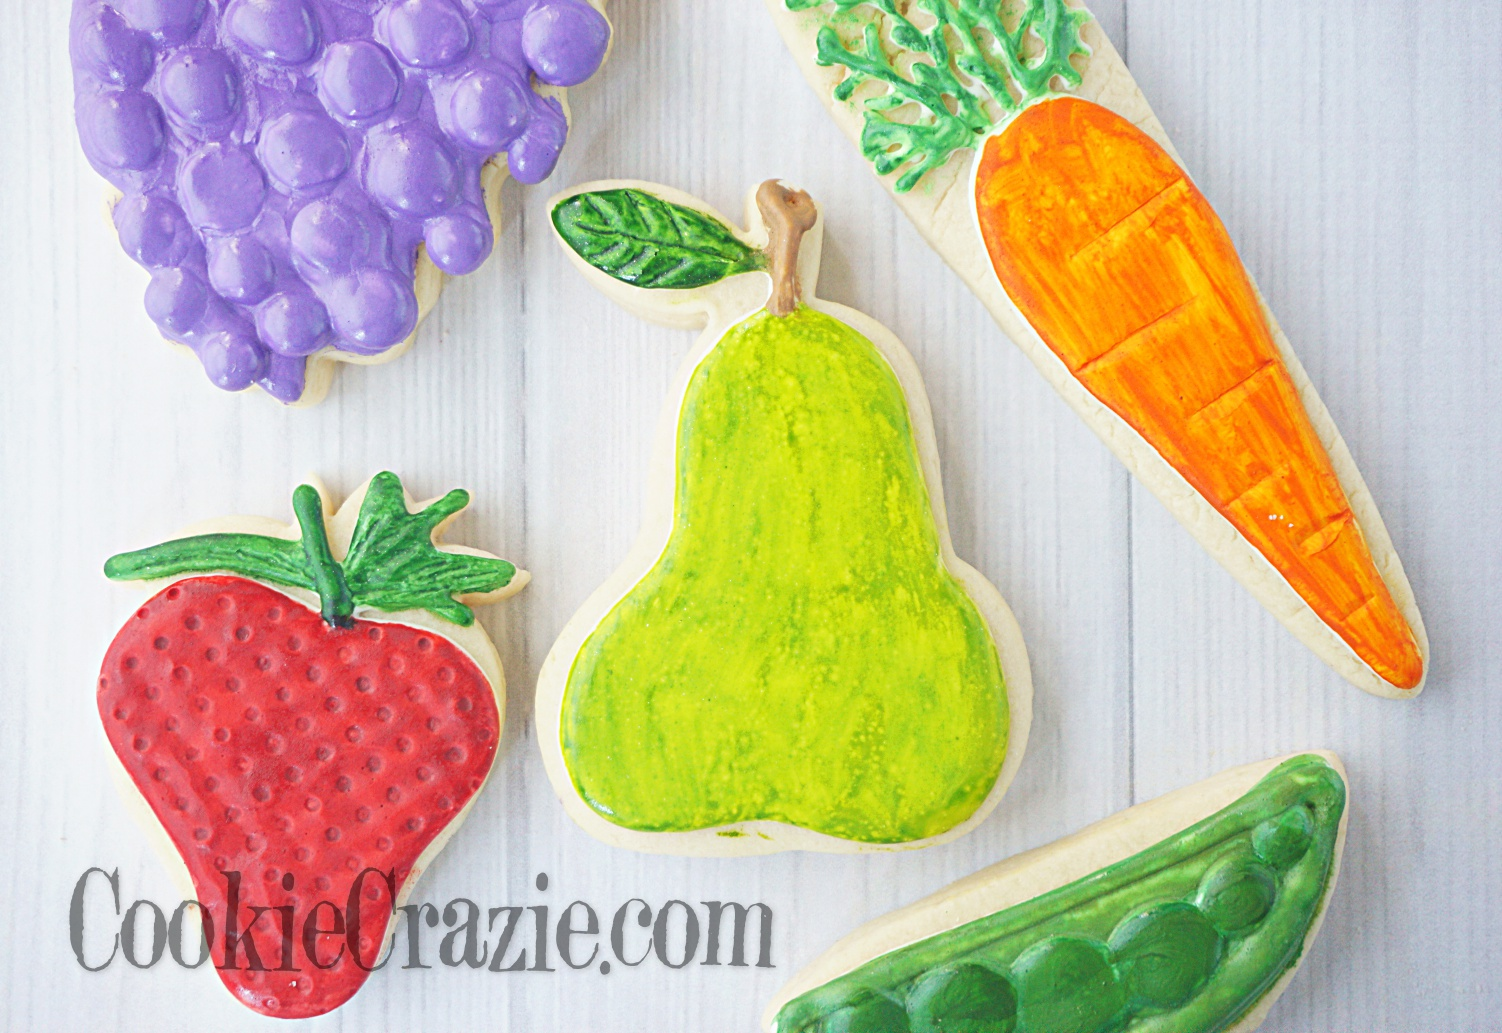 Pear Decorated Sugar Cookie YouTube video  HERE